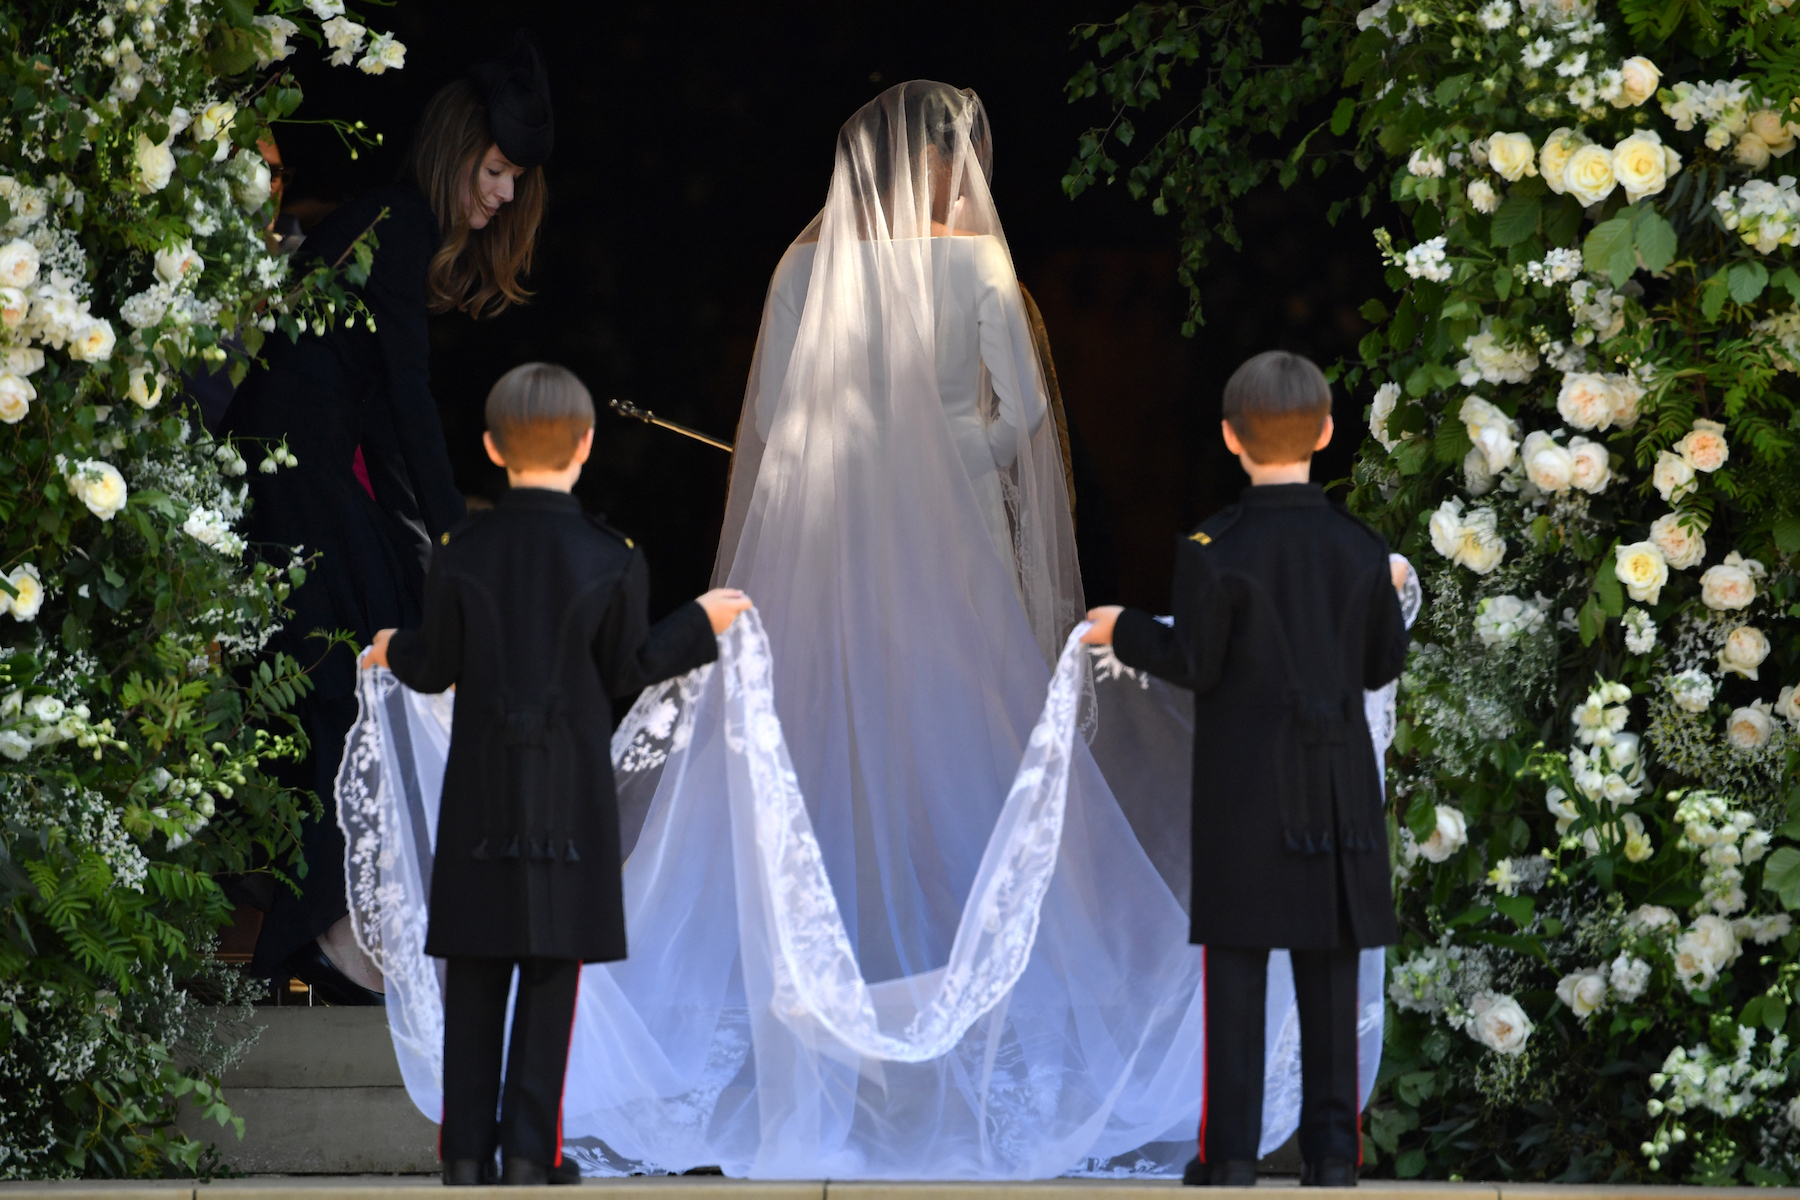 <div class='meta'><div class='origin-logo' data-origin='Creative Content'></div><span class='caption-text' data-credit='Ben Stansall/WPA Pool.Getty Images'>Meghan Markle arrives for the wedding ceremony to marry Prince Harry at St George's Chapel, Windsor Castle on May 19, 2018 in Windsor, England.</span></div>